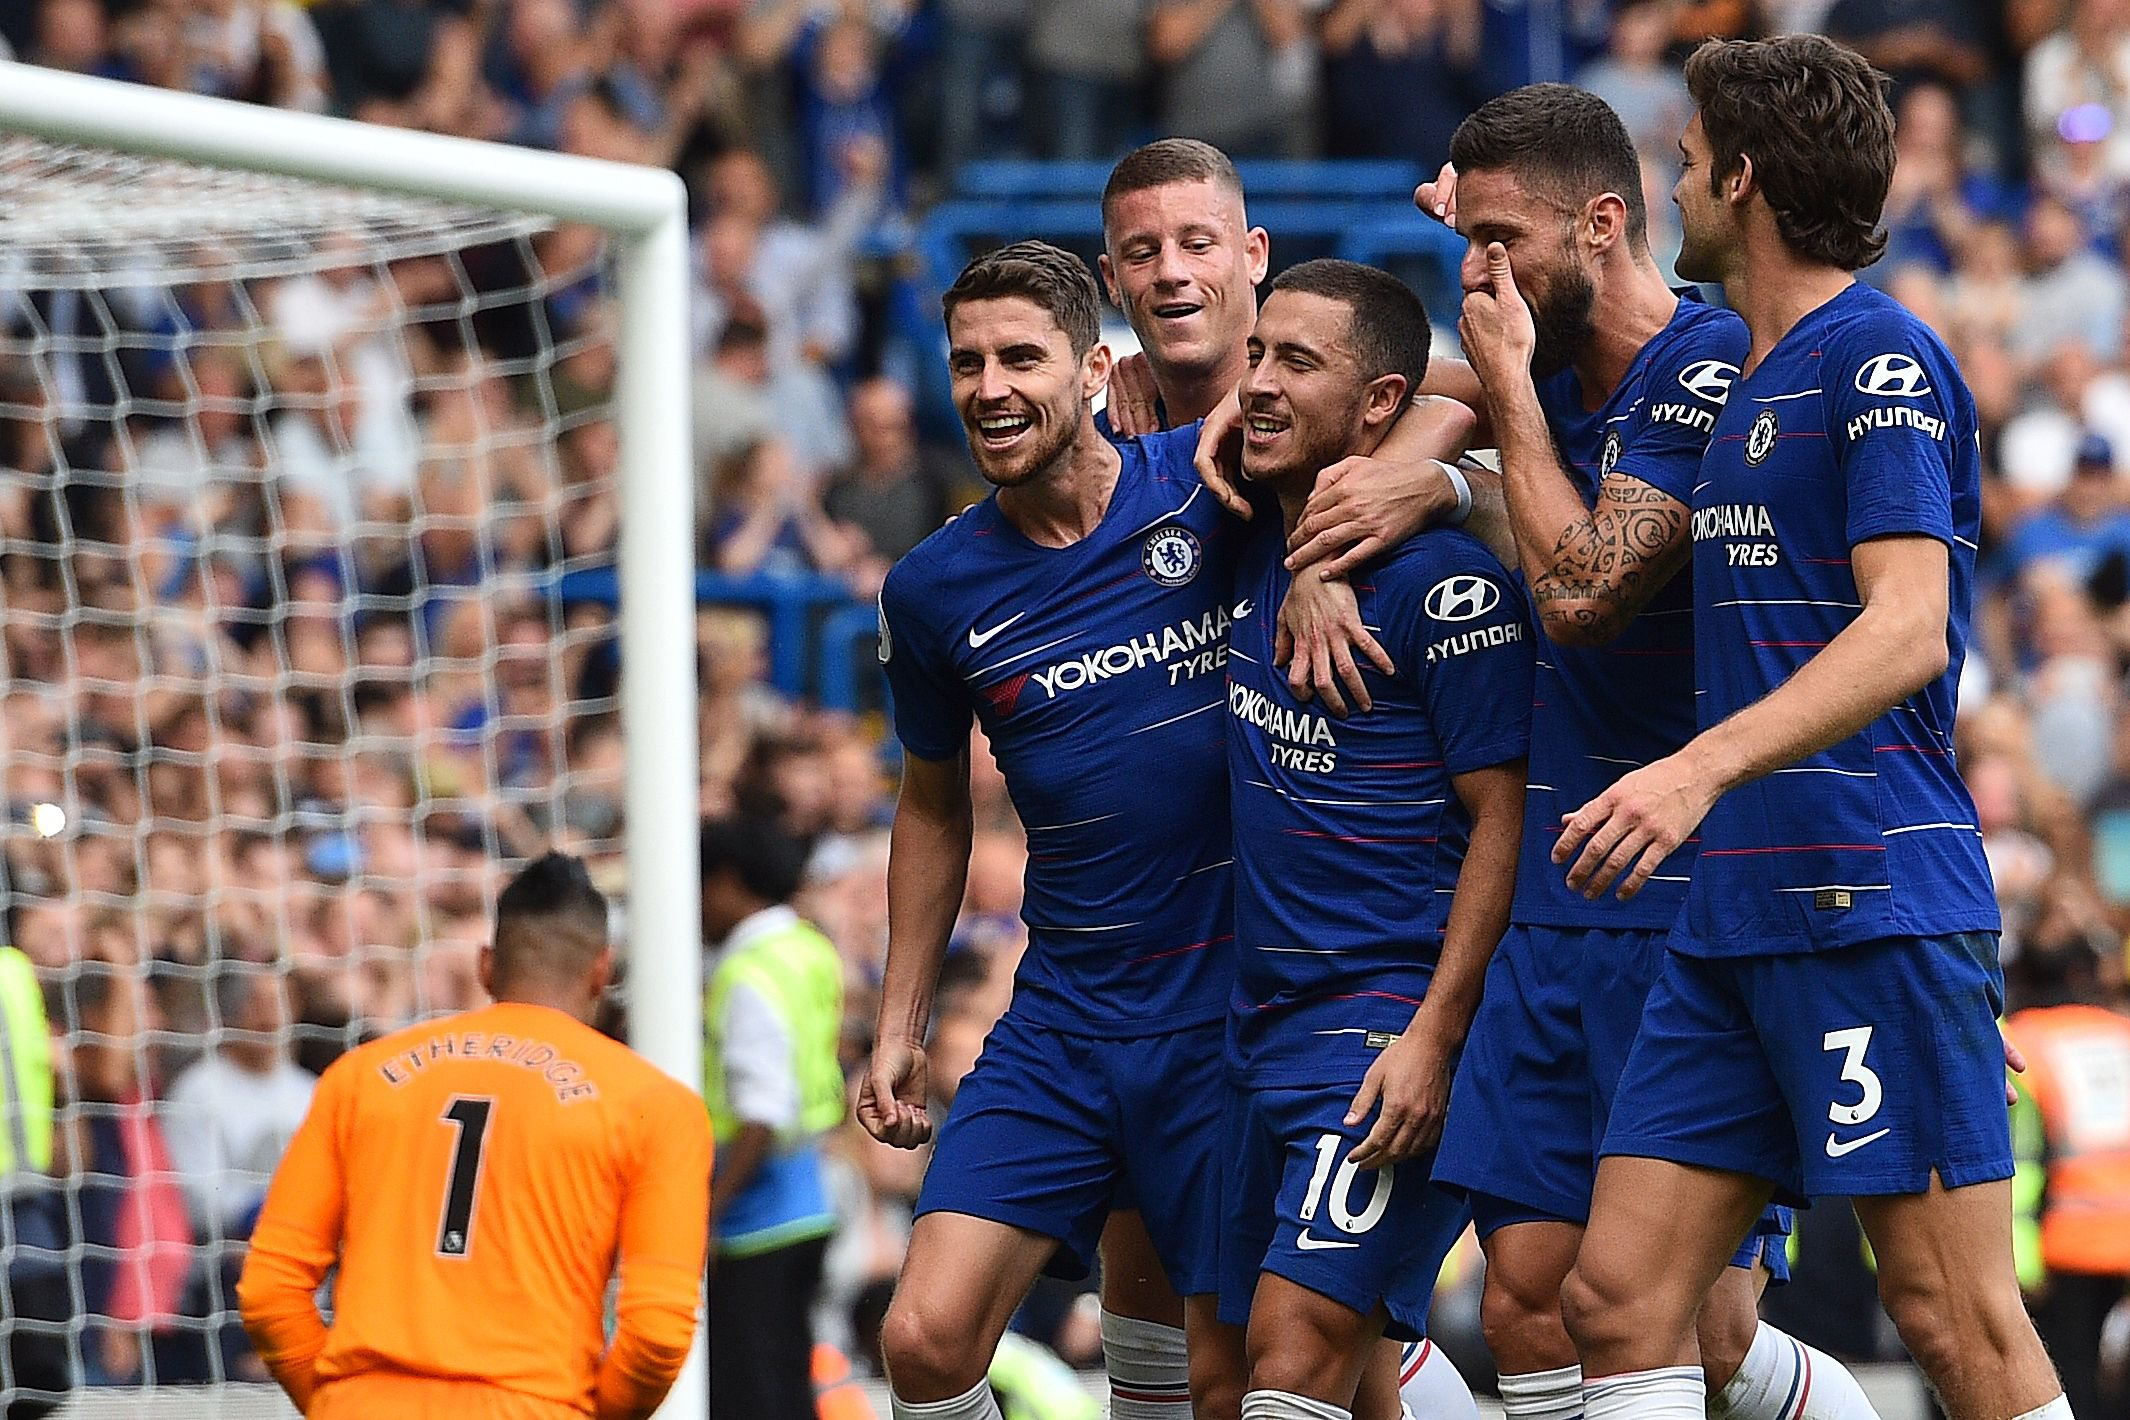 PAOK vs Chelsea TV channel, live stream, kick-off time, odds and team news for Europa League